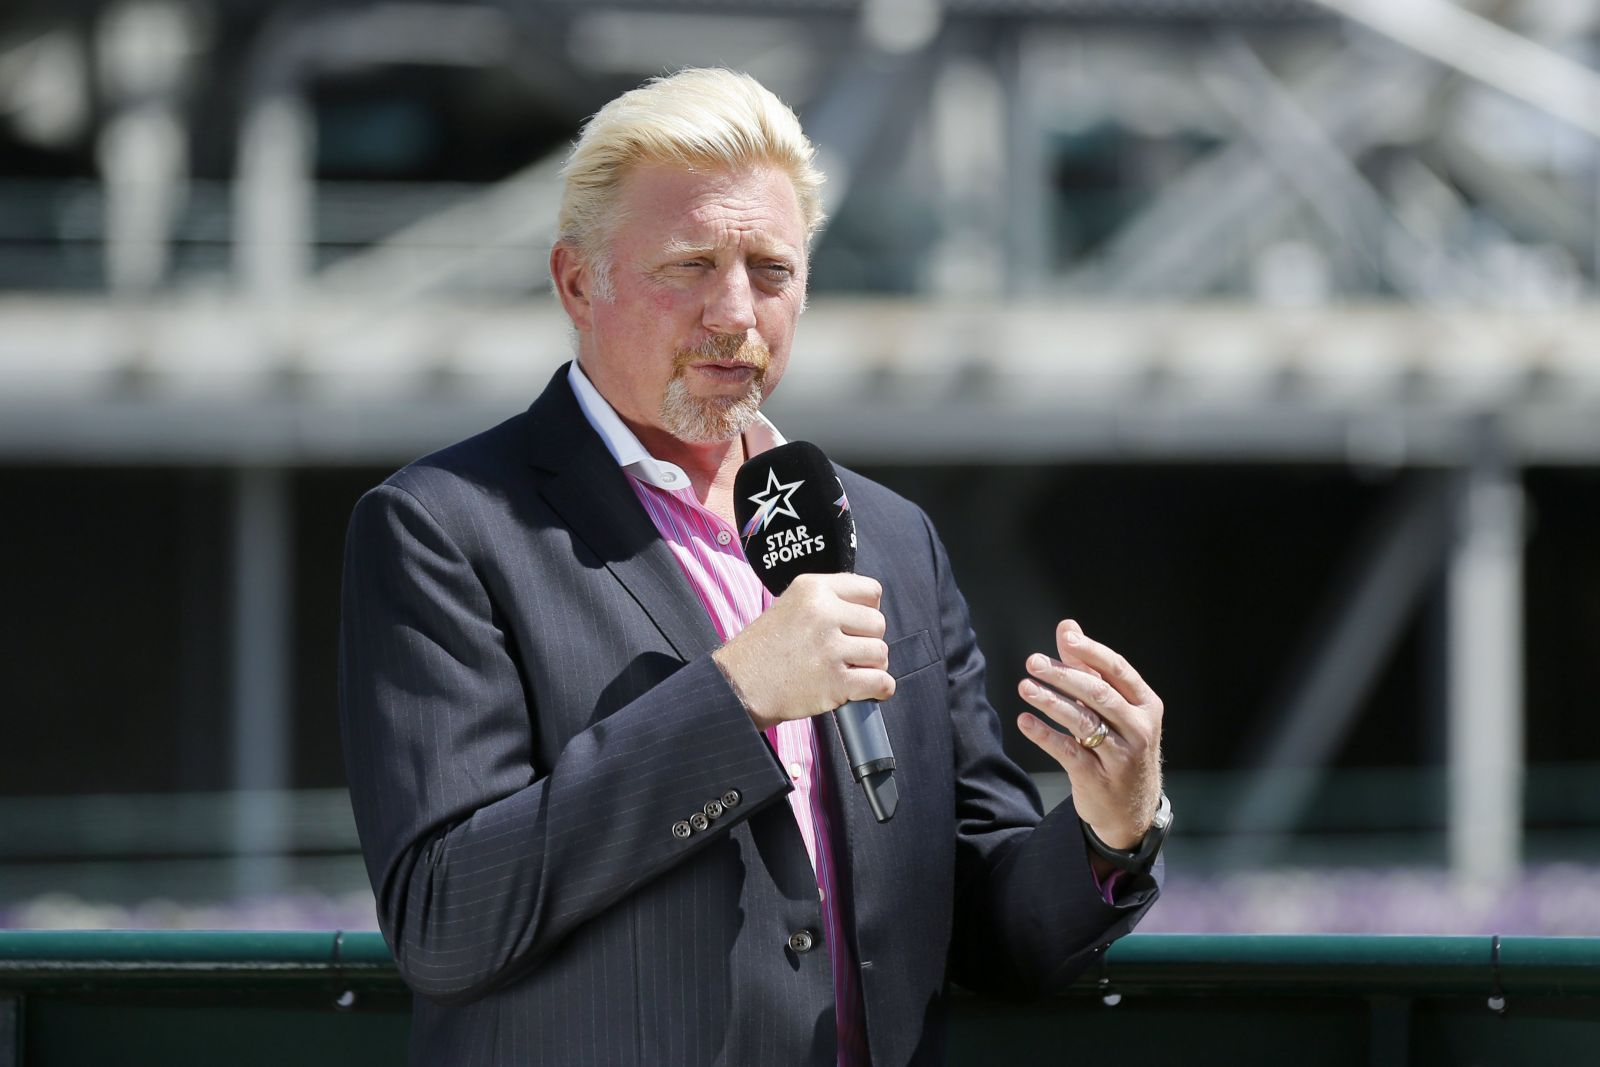 Swiss court rules for Boris Becker in debt case Life & Culture